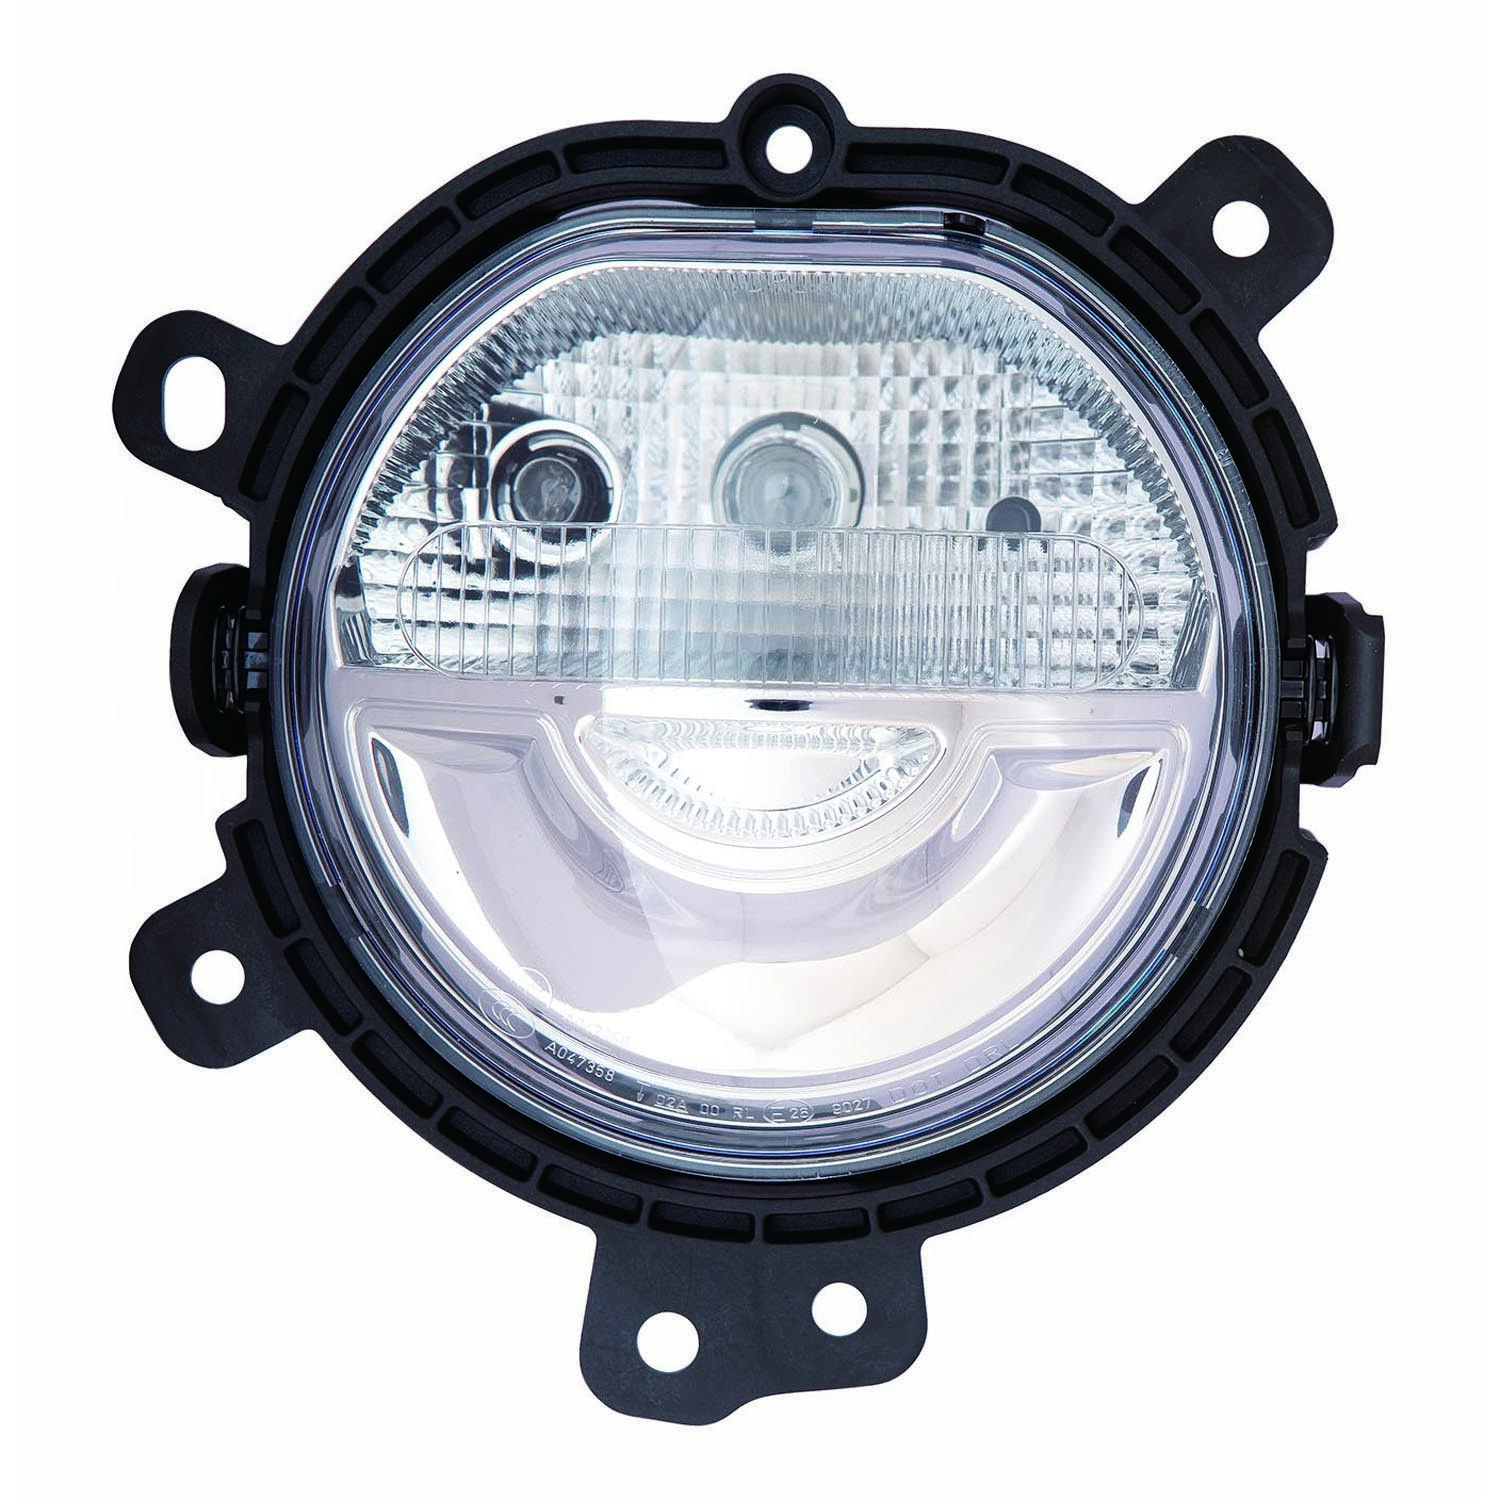 Our Guaranteed Free Shipping Delivery Comes With A 1 Year Warranty Hassle Free Returns Partzroot Sells Domestic Im Led Headlamp Running Lights Mini Cooper